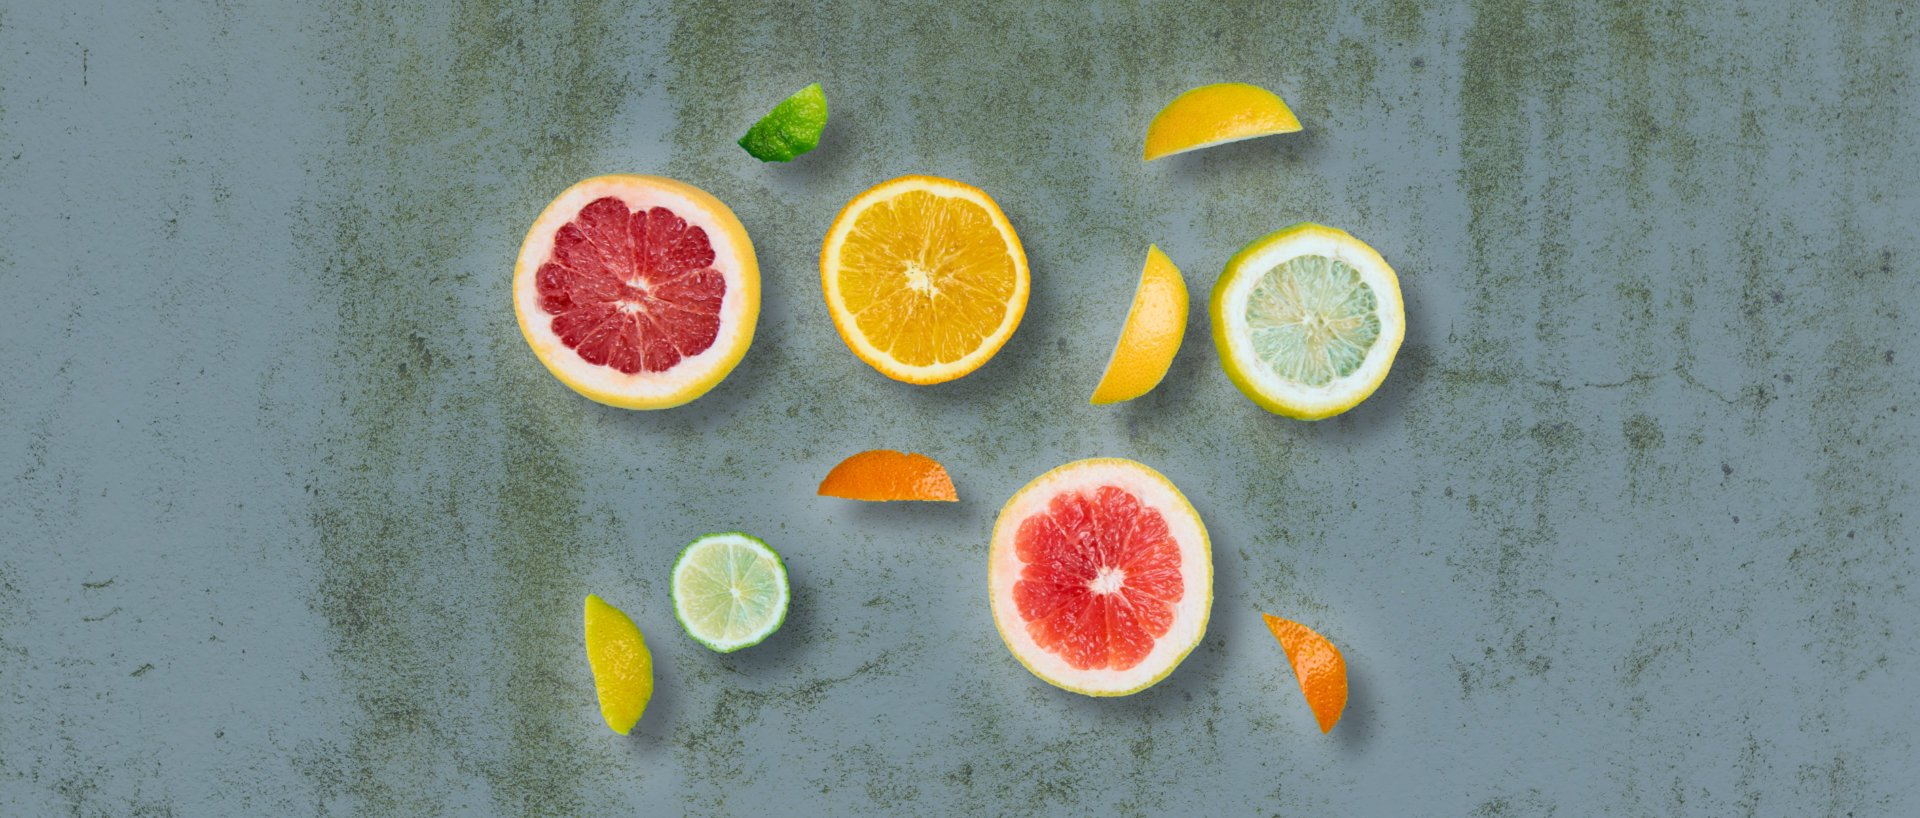 Organic citrus fruits for lemonade